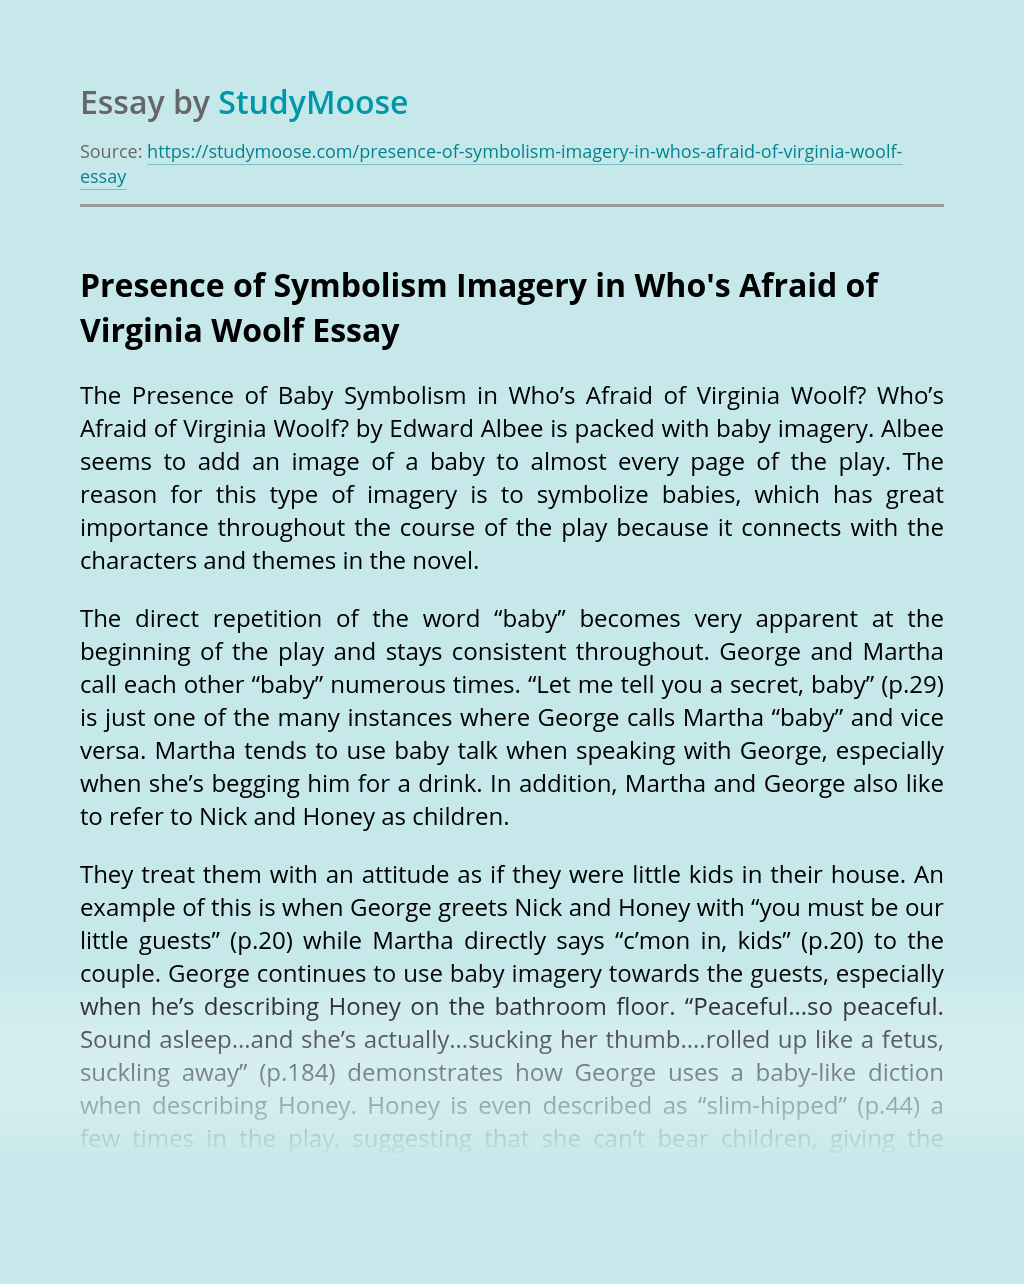 Presence of Symbolism Imagery in Who's Afraid of Virginia Woolf